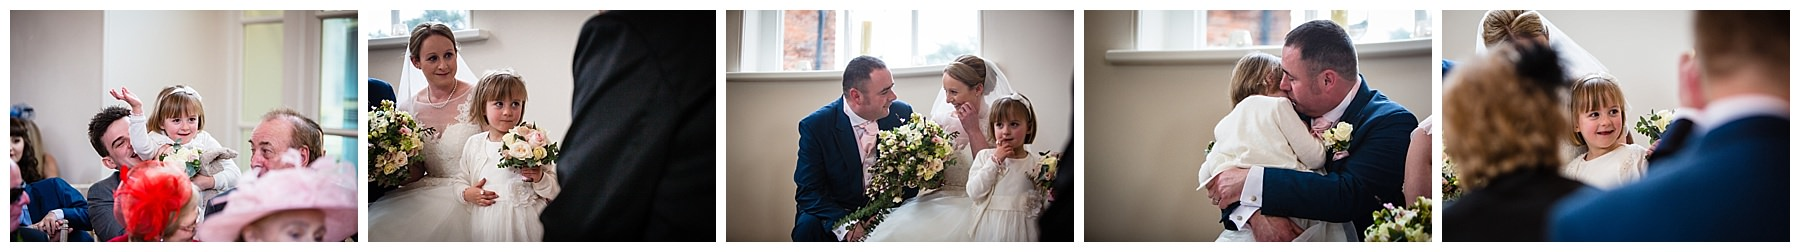 various candid photos of the bride and groom with the flowergirl - having cuddless with the groom